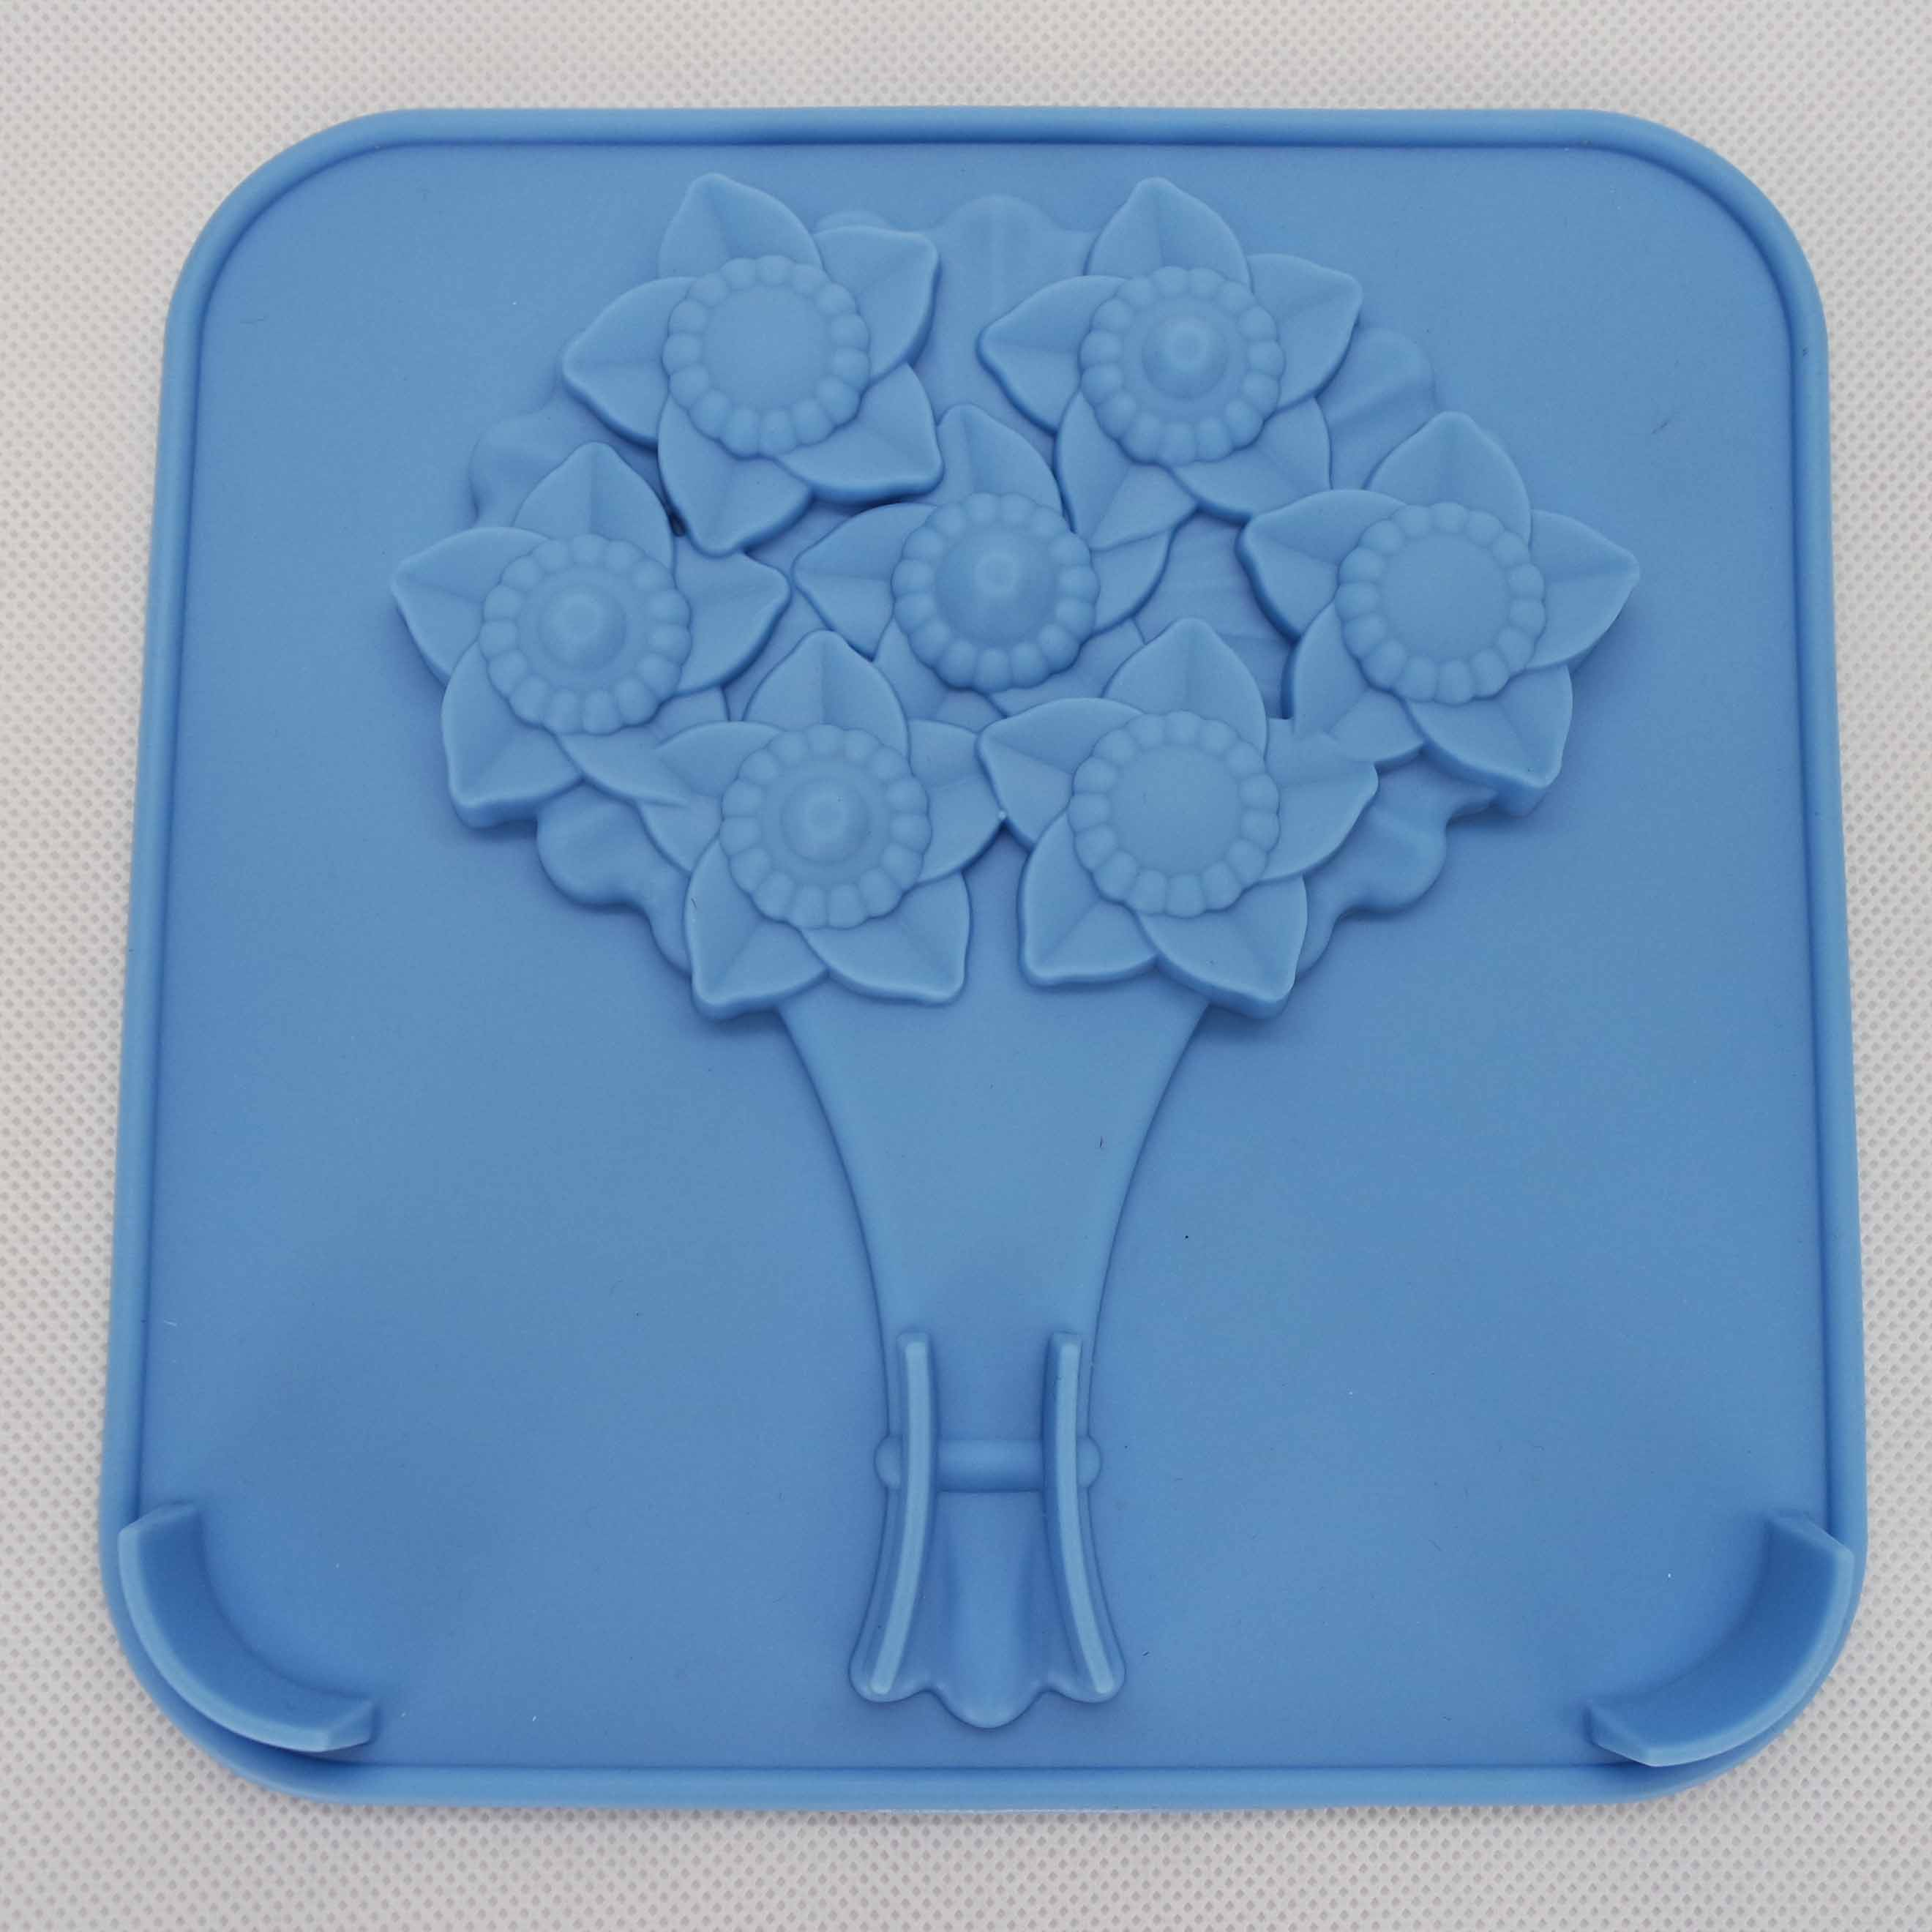 CXCH-029	Silicone chocoalte mould -Flower